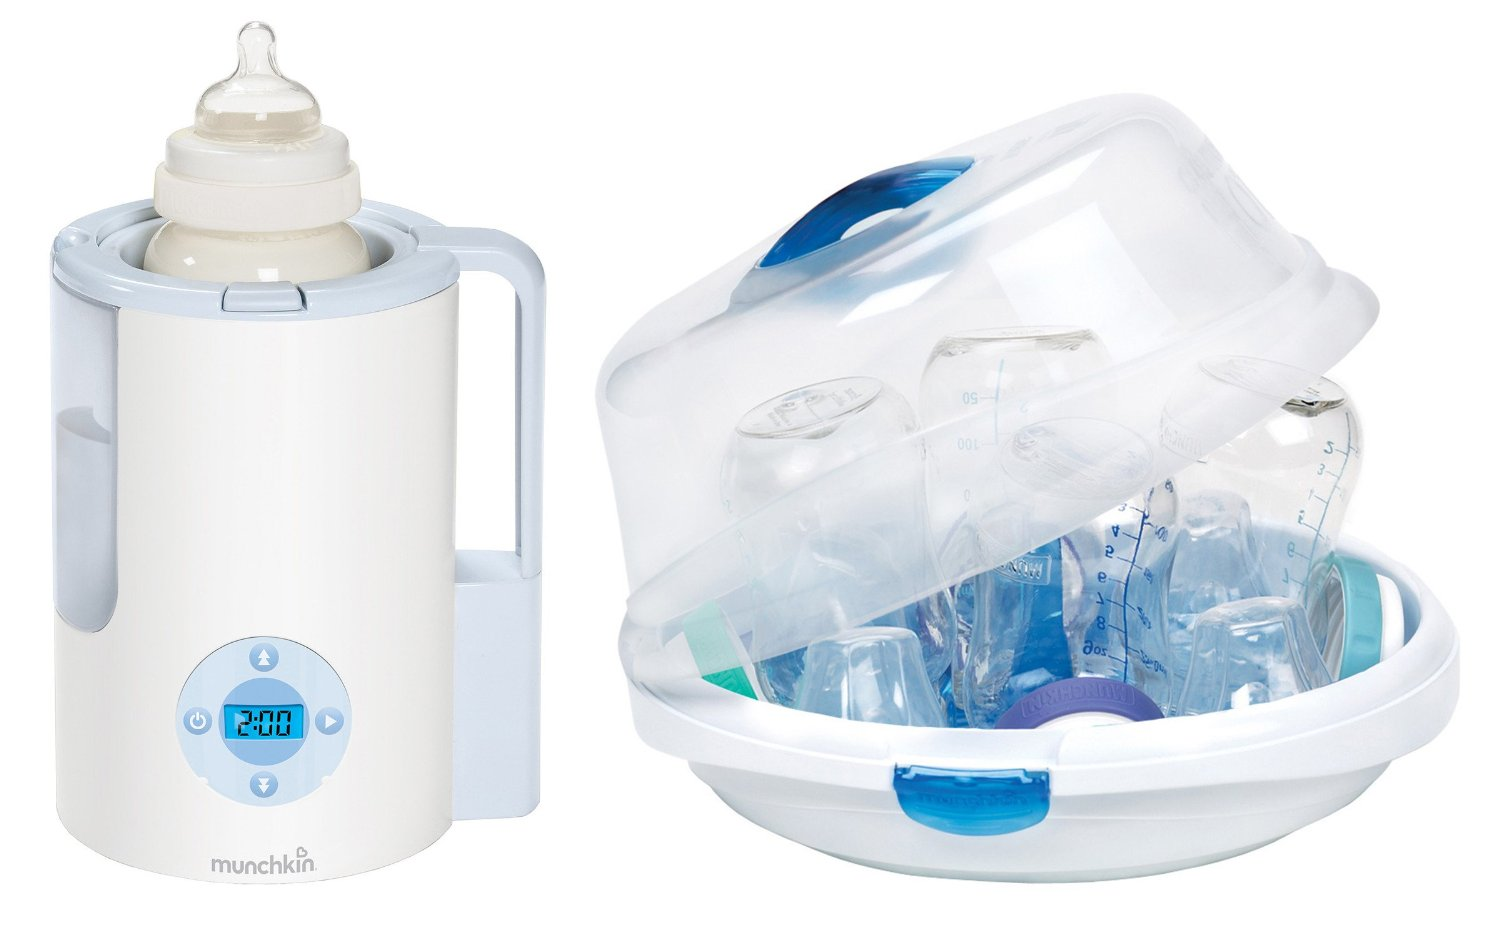 Munchkin Precision Digital Bottle Warmer with Microwave Steam Sterilizer by Munchkin